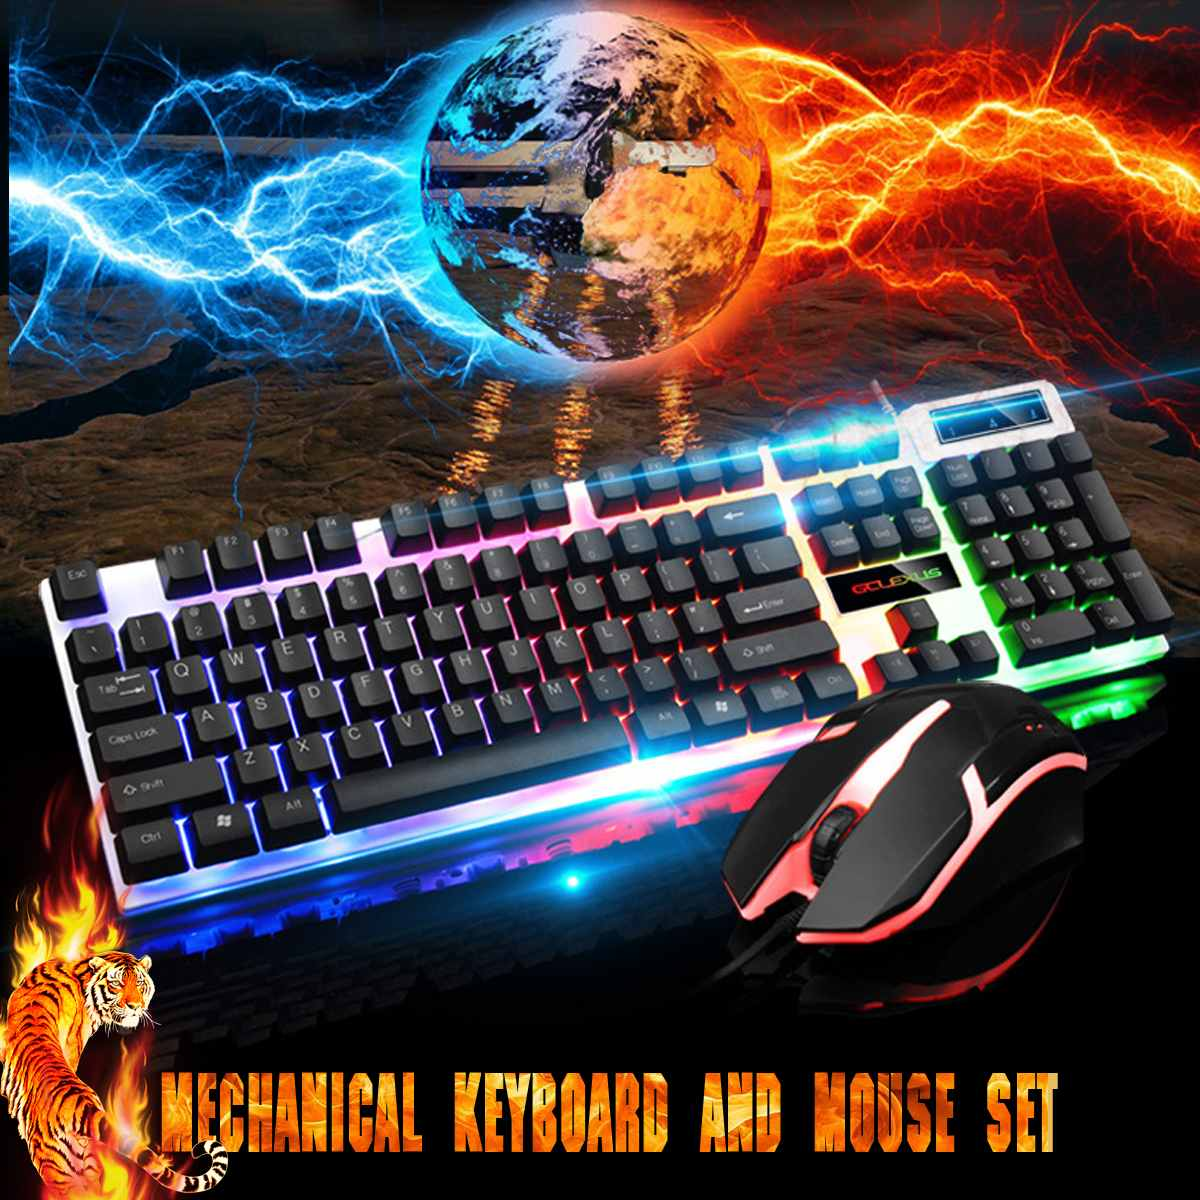 104 Keys USB Wired Keyboard Mouse Combo Set Rainbow Light For Notebook Laptop Desktop Gaming PC Office Supplies Mices